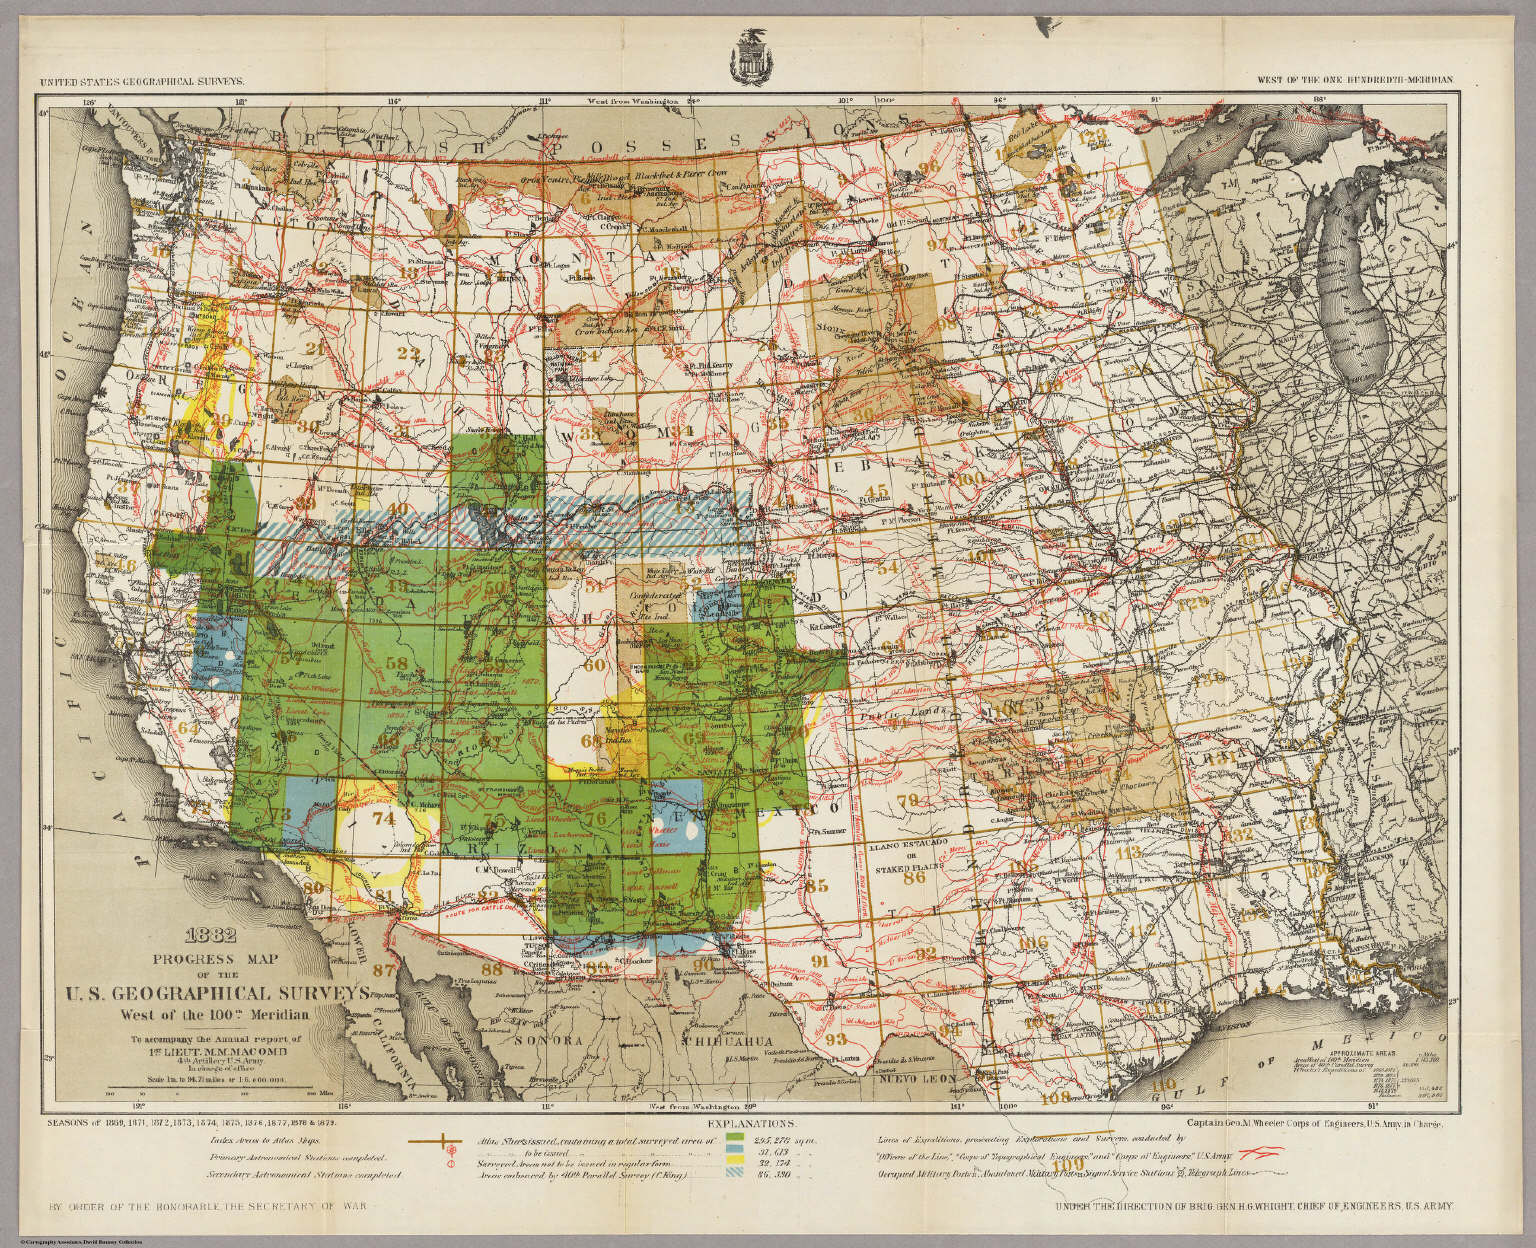 Progress Map Of The U S Geographical Surveys West Of The 100th Meridian